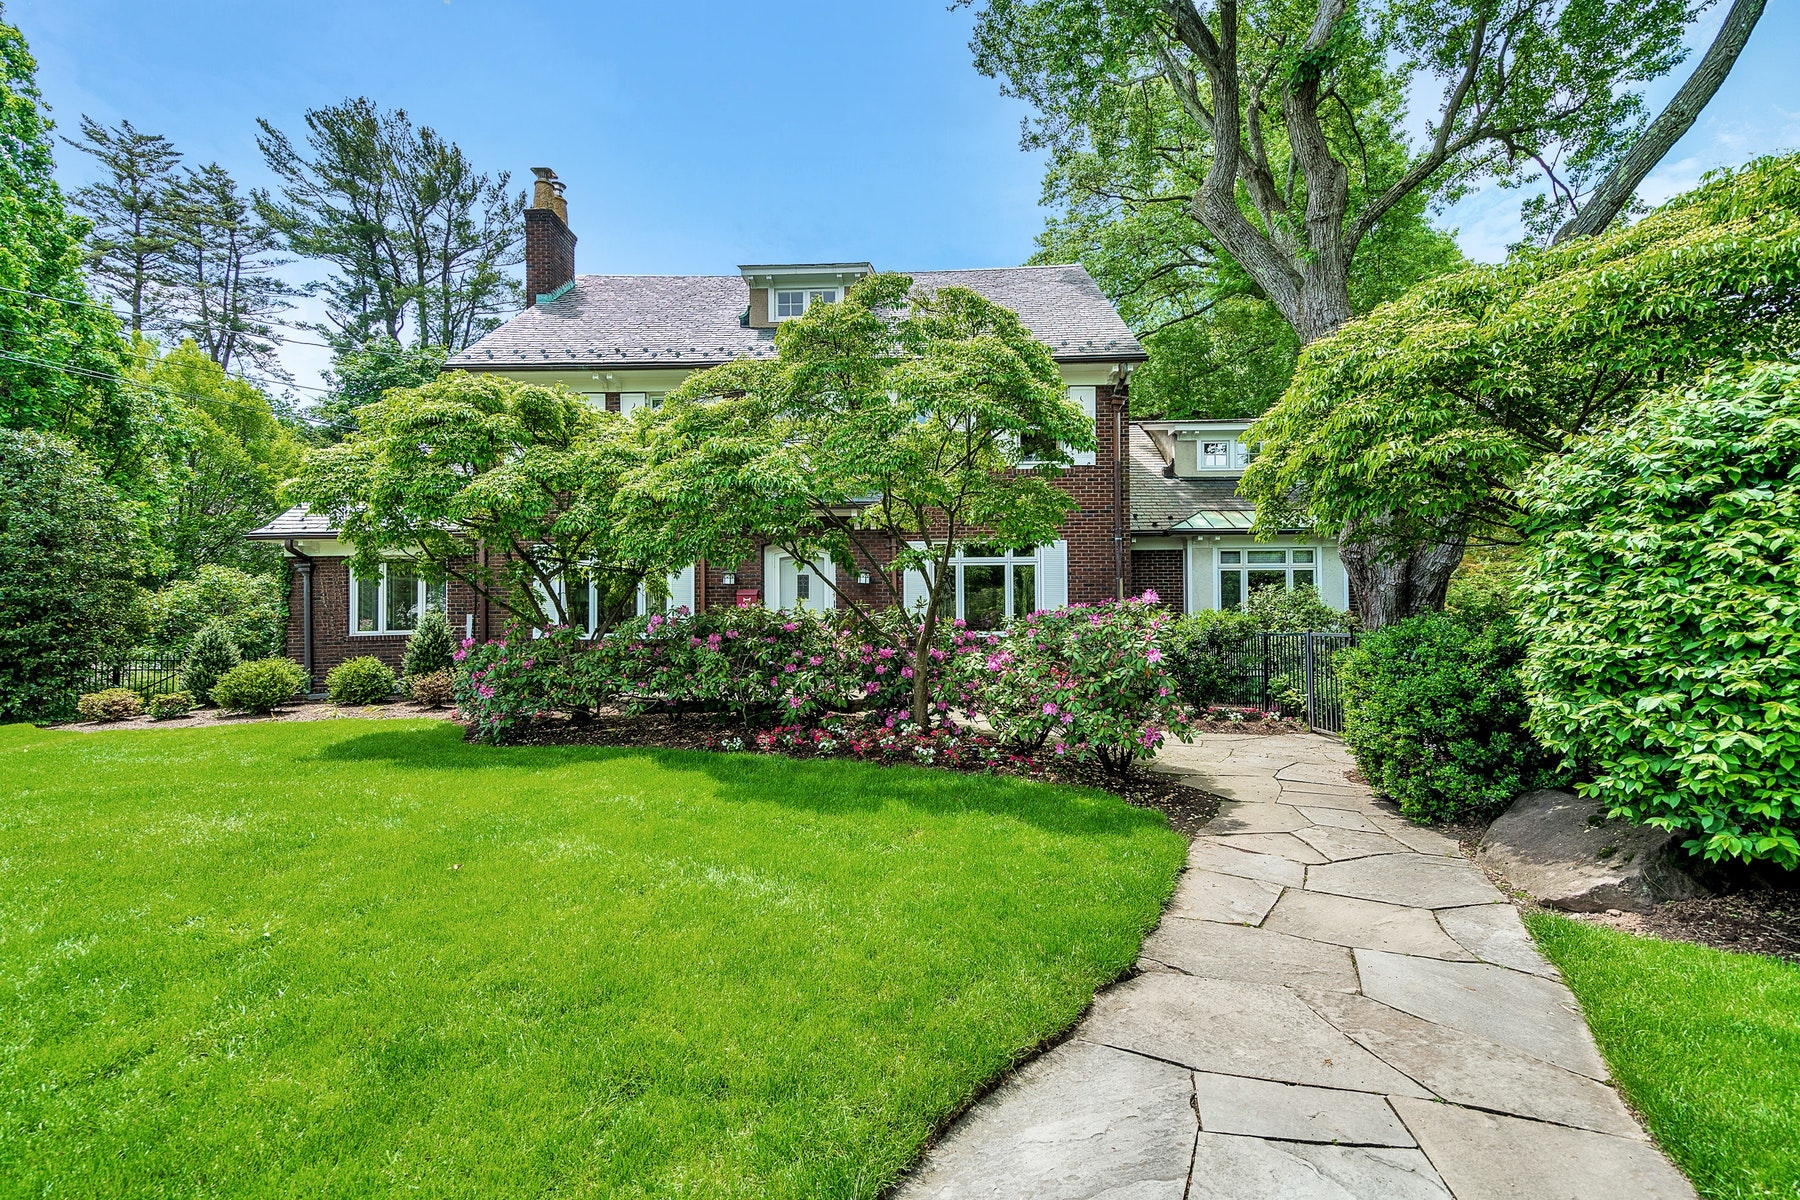 Single Family Homes for Sale at Experience Timeless Elegance When You Enter This Georgian Colonial. 34 Maynard Court Ridgewood, New Jersey 07450 United States